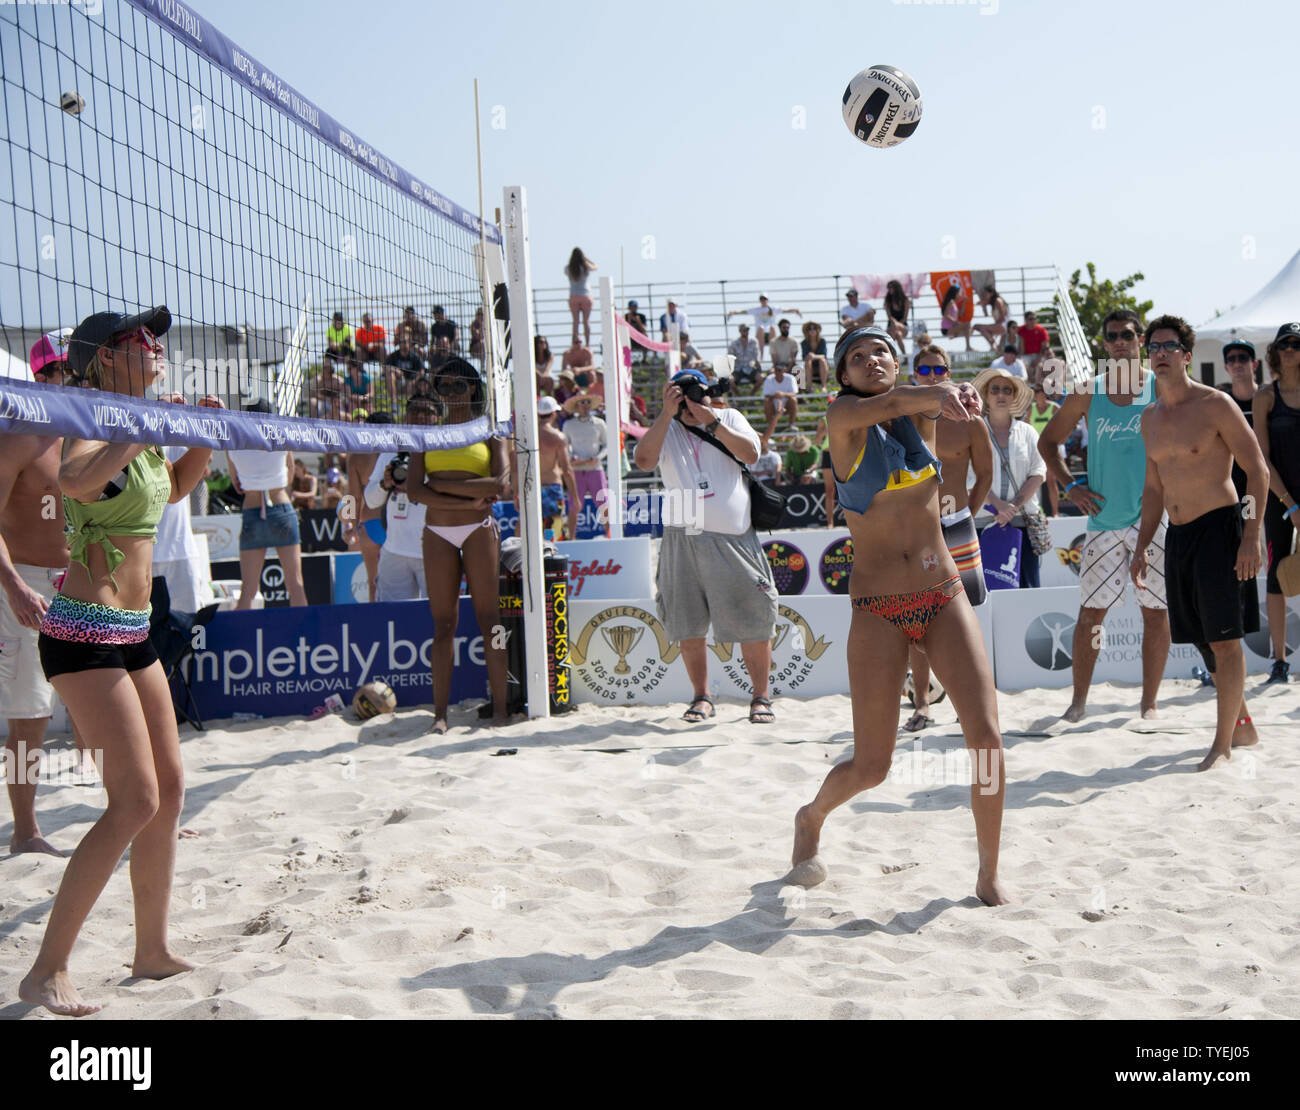 Model Beach Volleyball High Resolution Stock Photography And Images Alamy